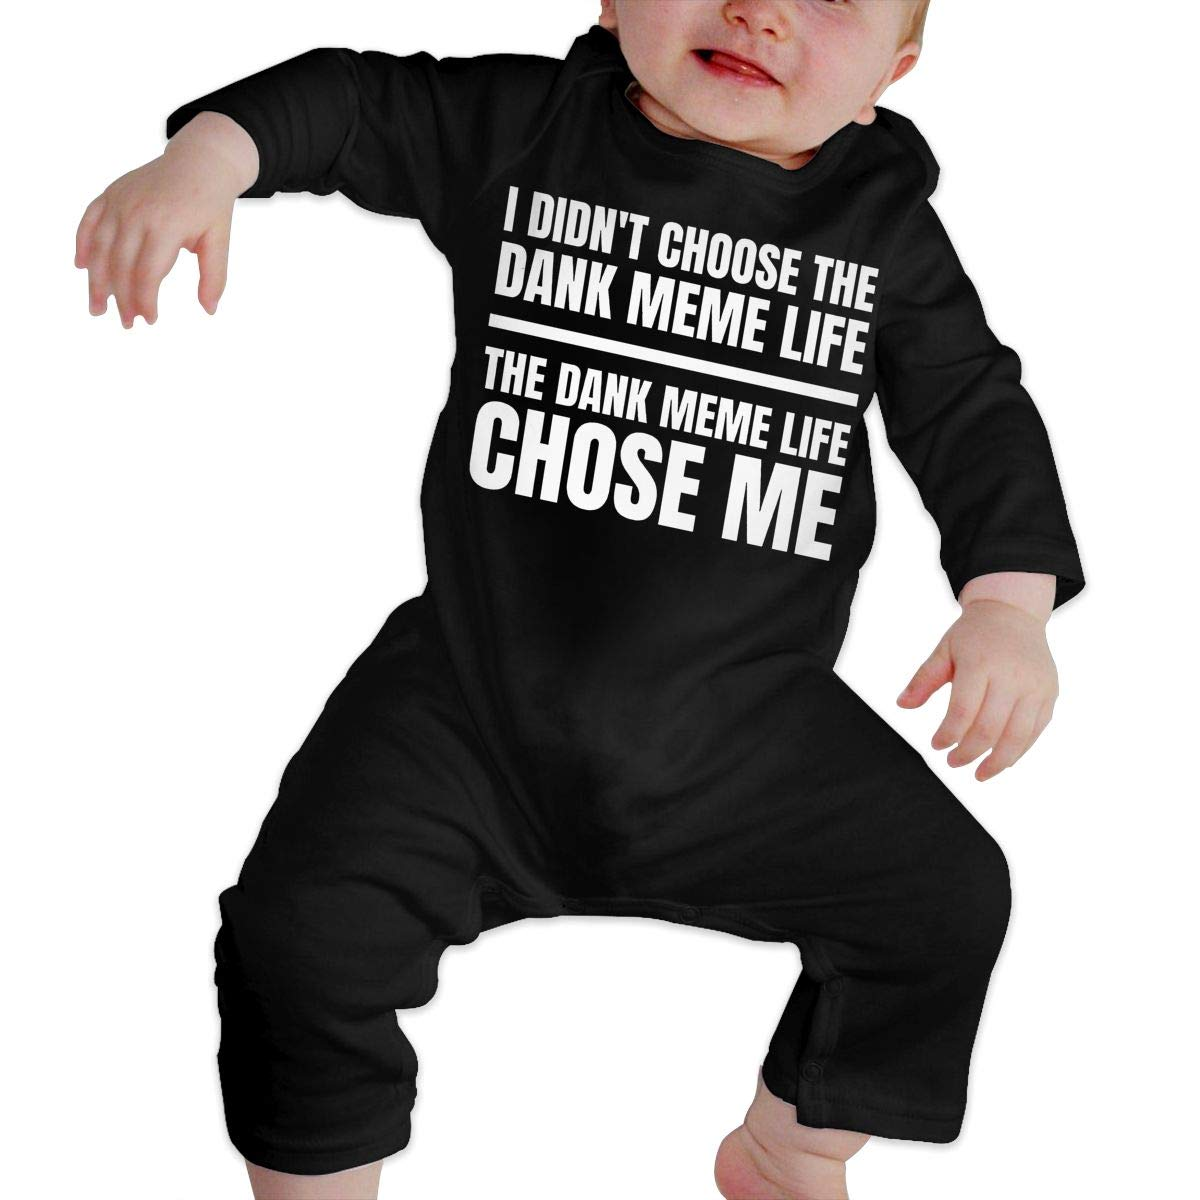 KAYERDELLE I Didnt Choose The Dank Meme Life Long Sleeve Unisex Baby Bodysuits for 6-24 Months Toddler